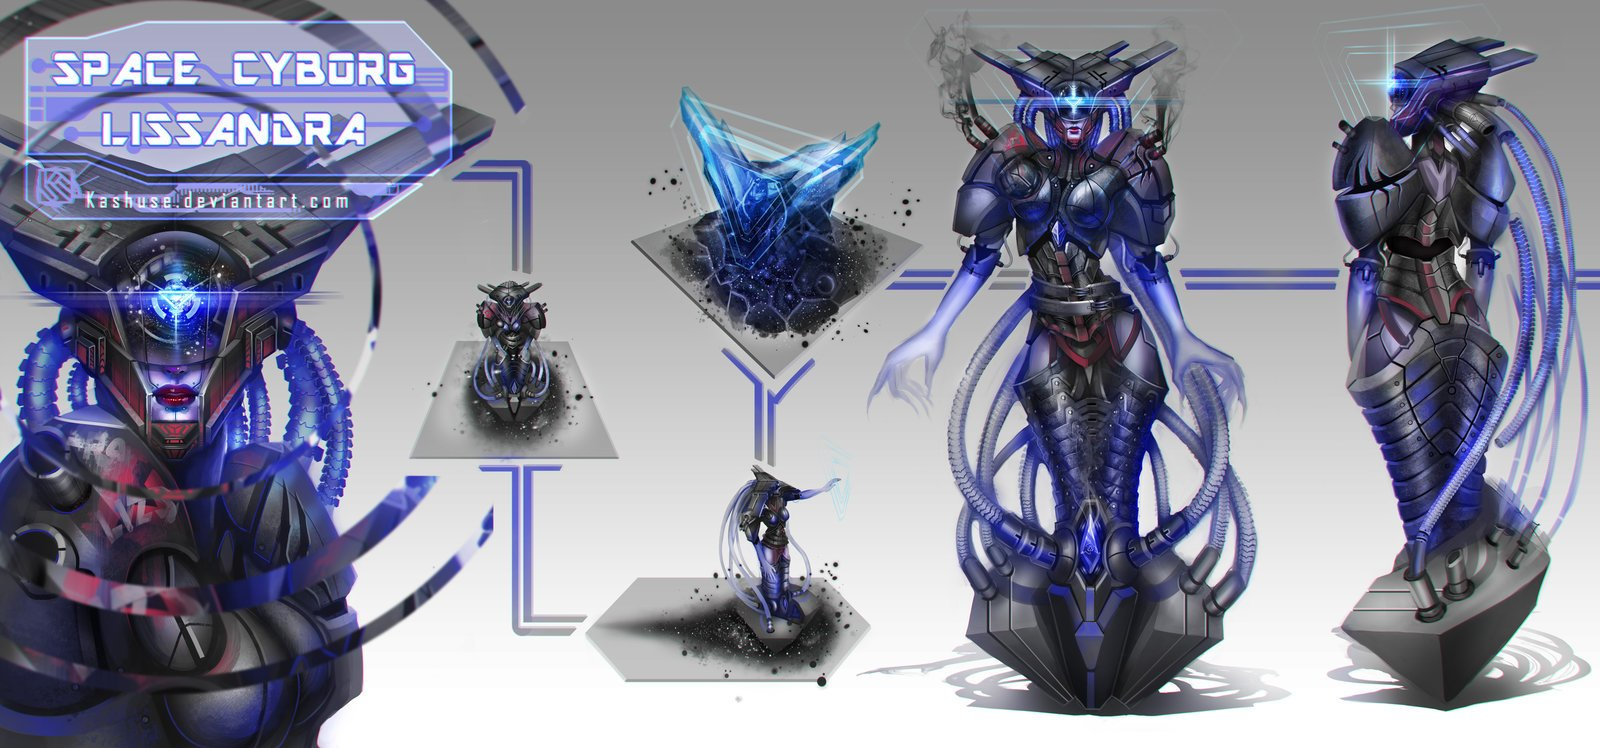 league_of_legends_lissandra_space_cyborg_concept_by_kashuse-d6wt50a